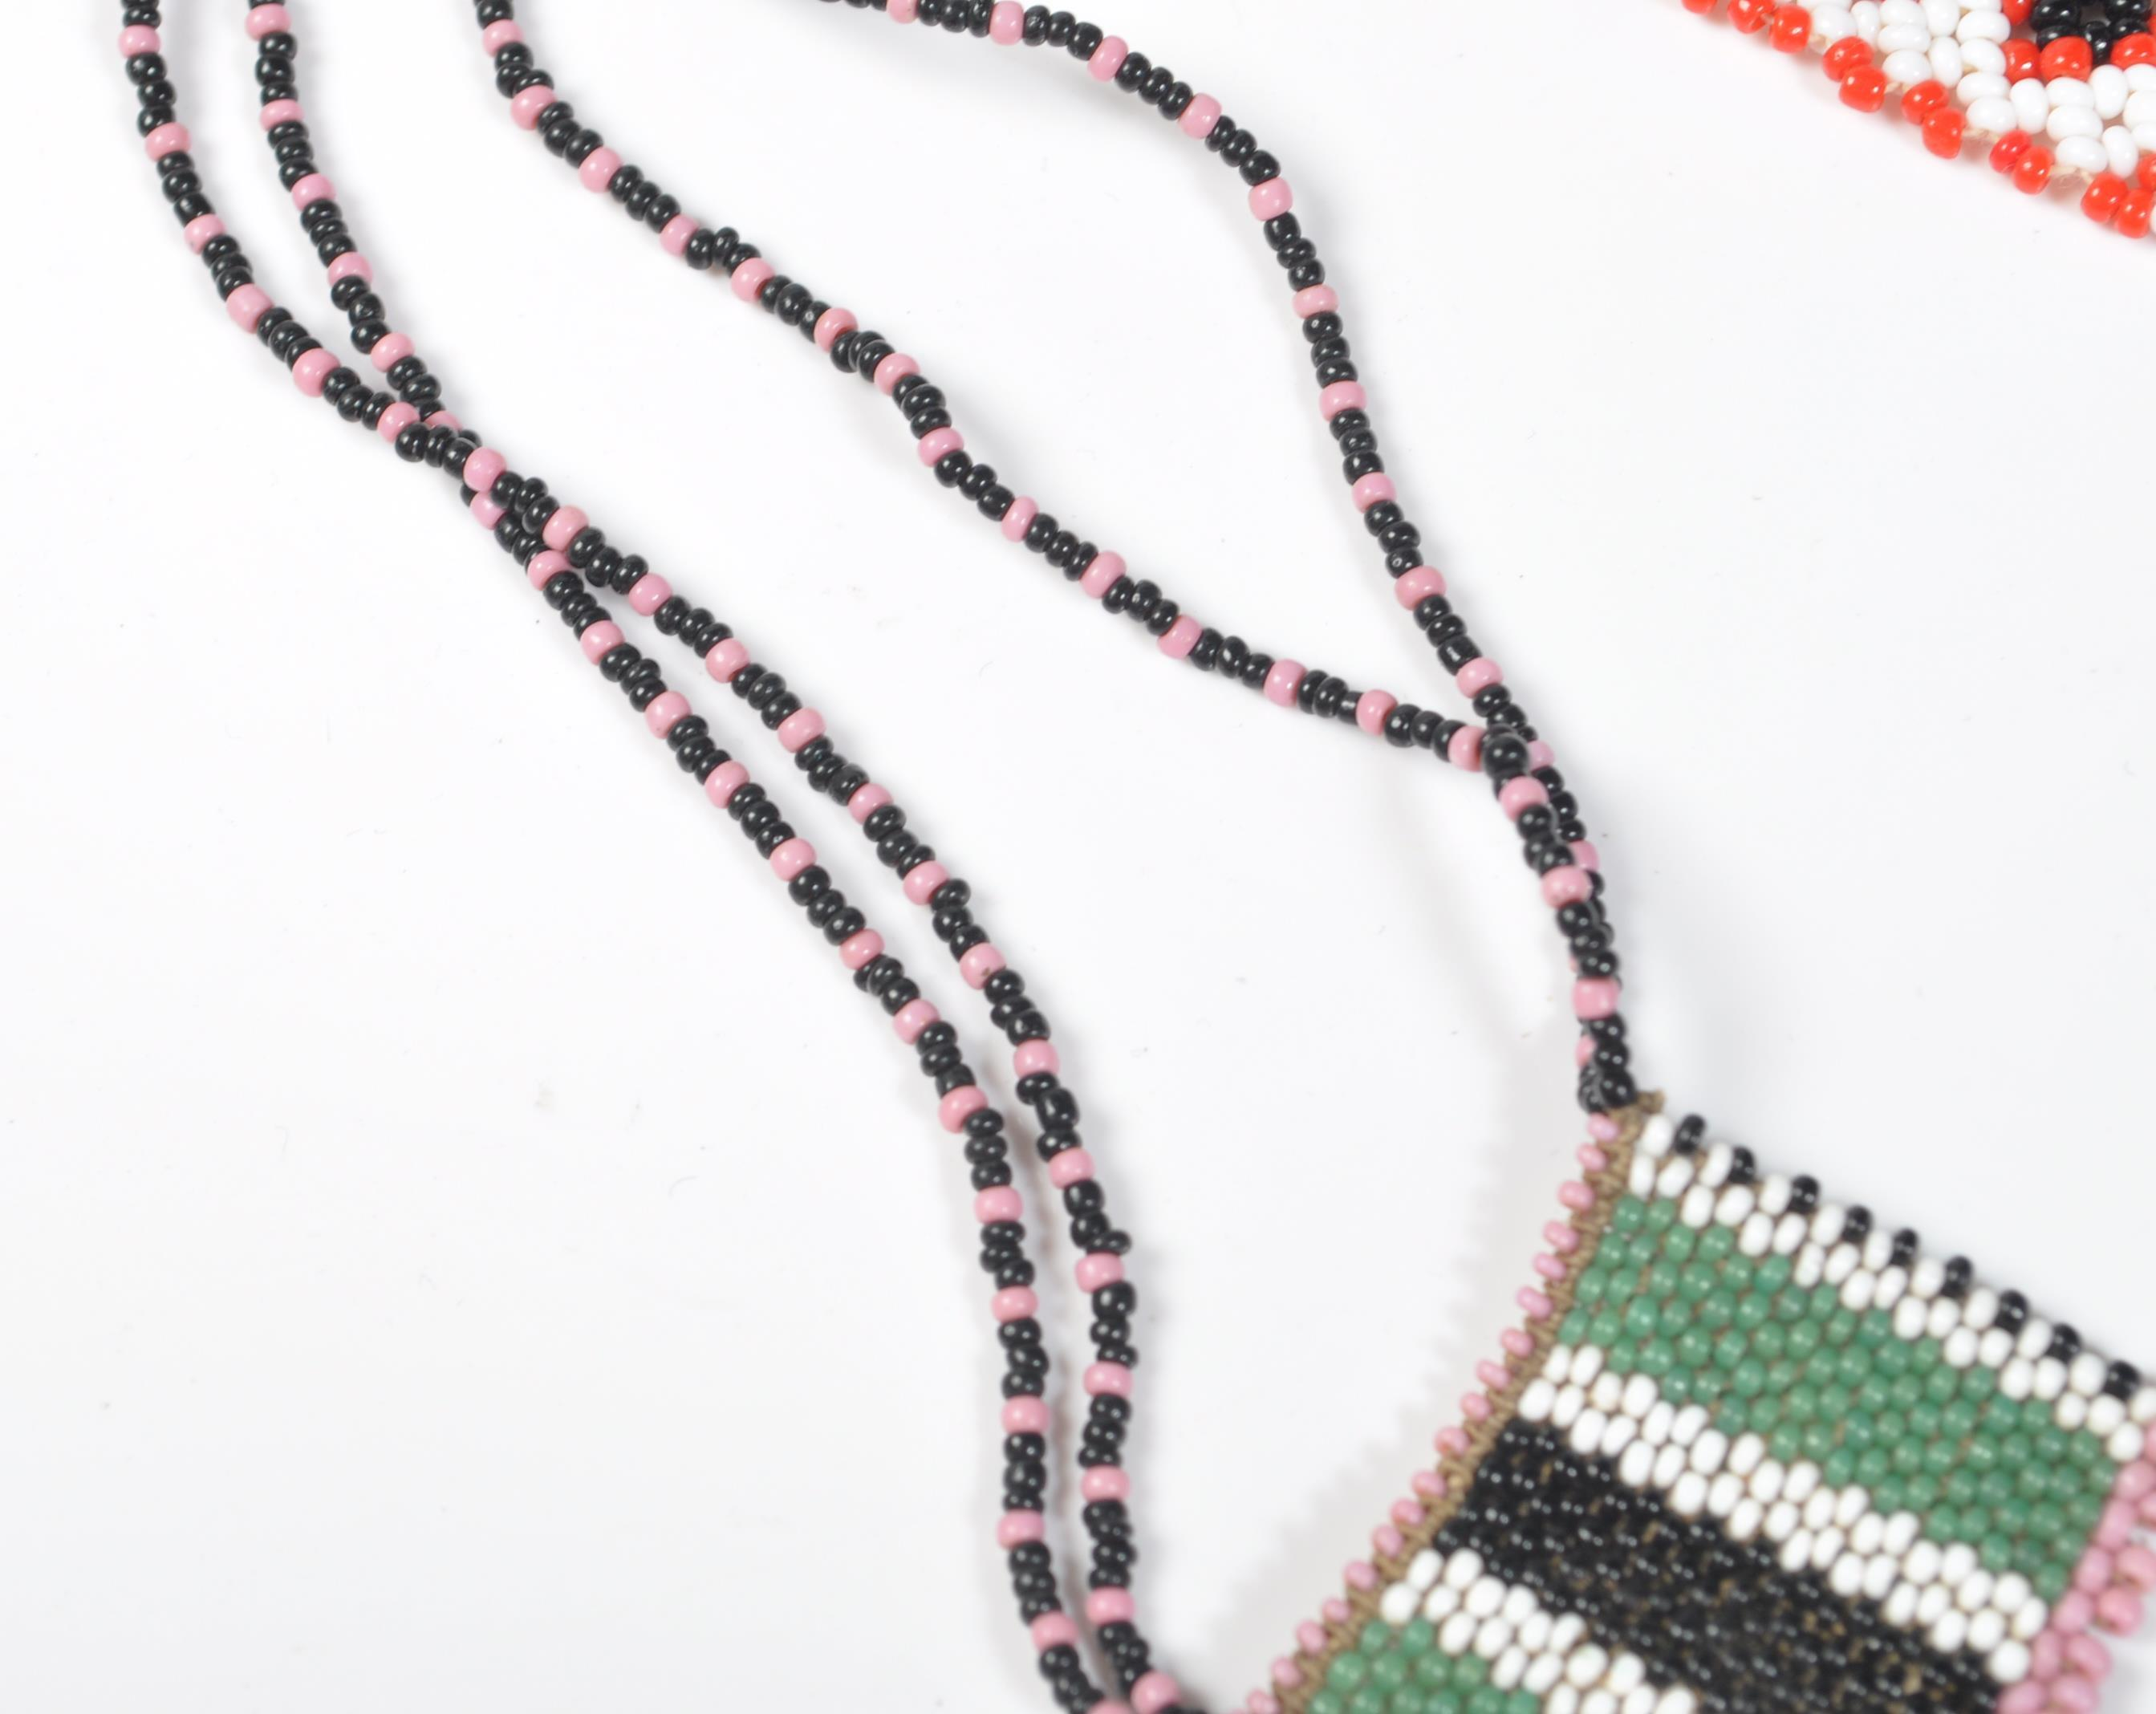 COLLECTION OF ZULU AFRICAN AND NATIVE AMERCIAN JEWELLERY. - Image 8 of 9